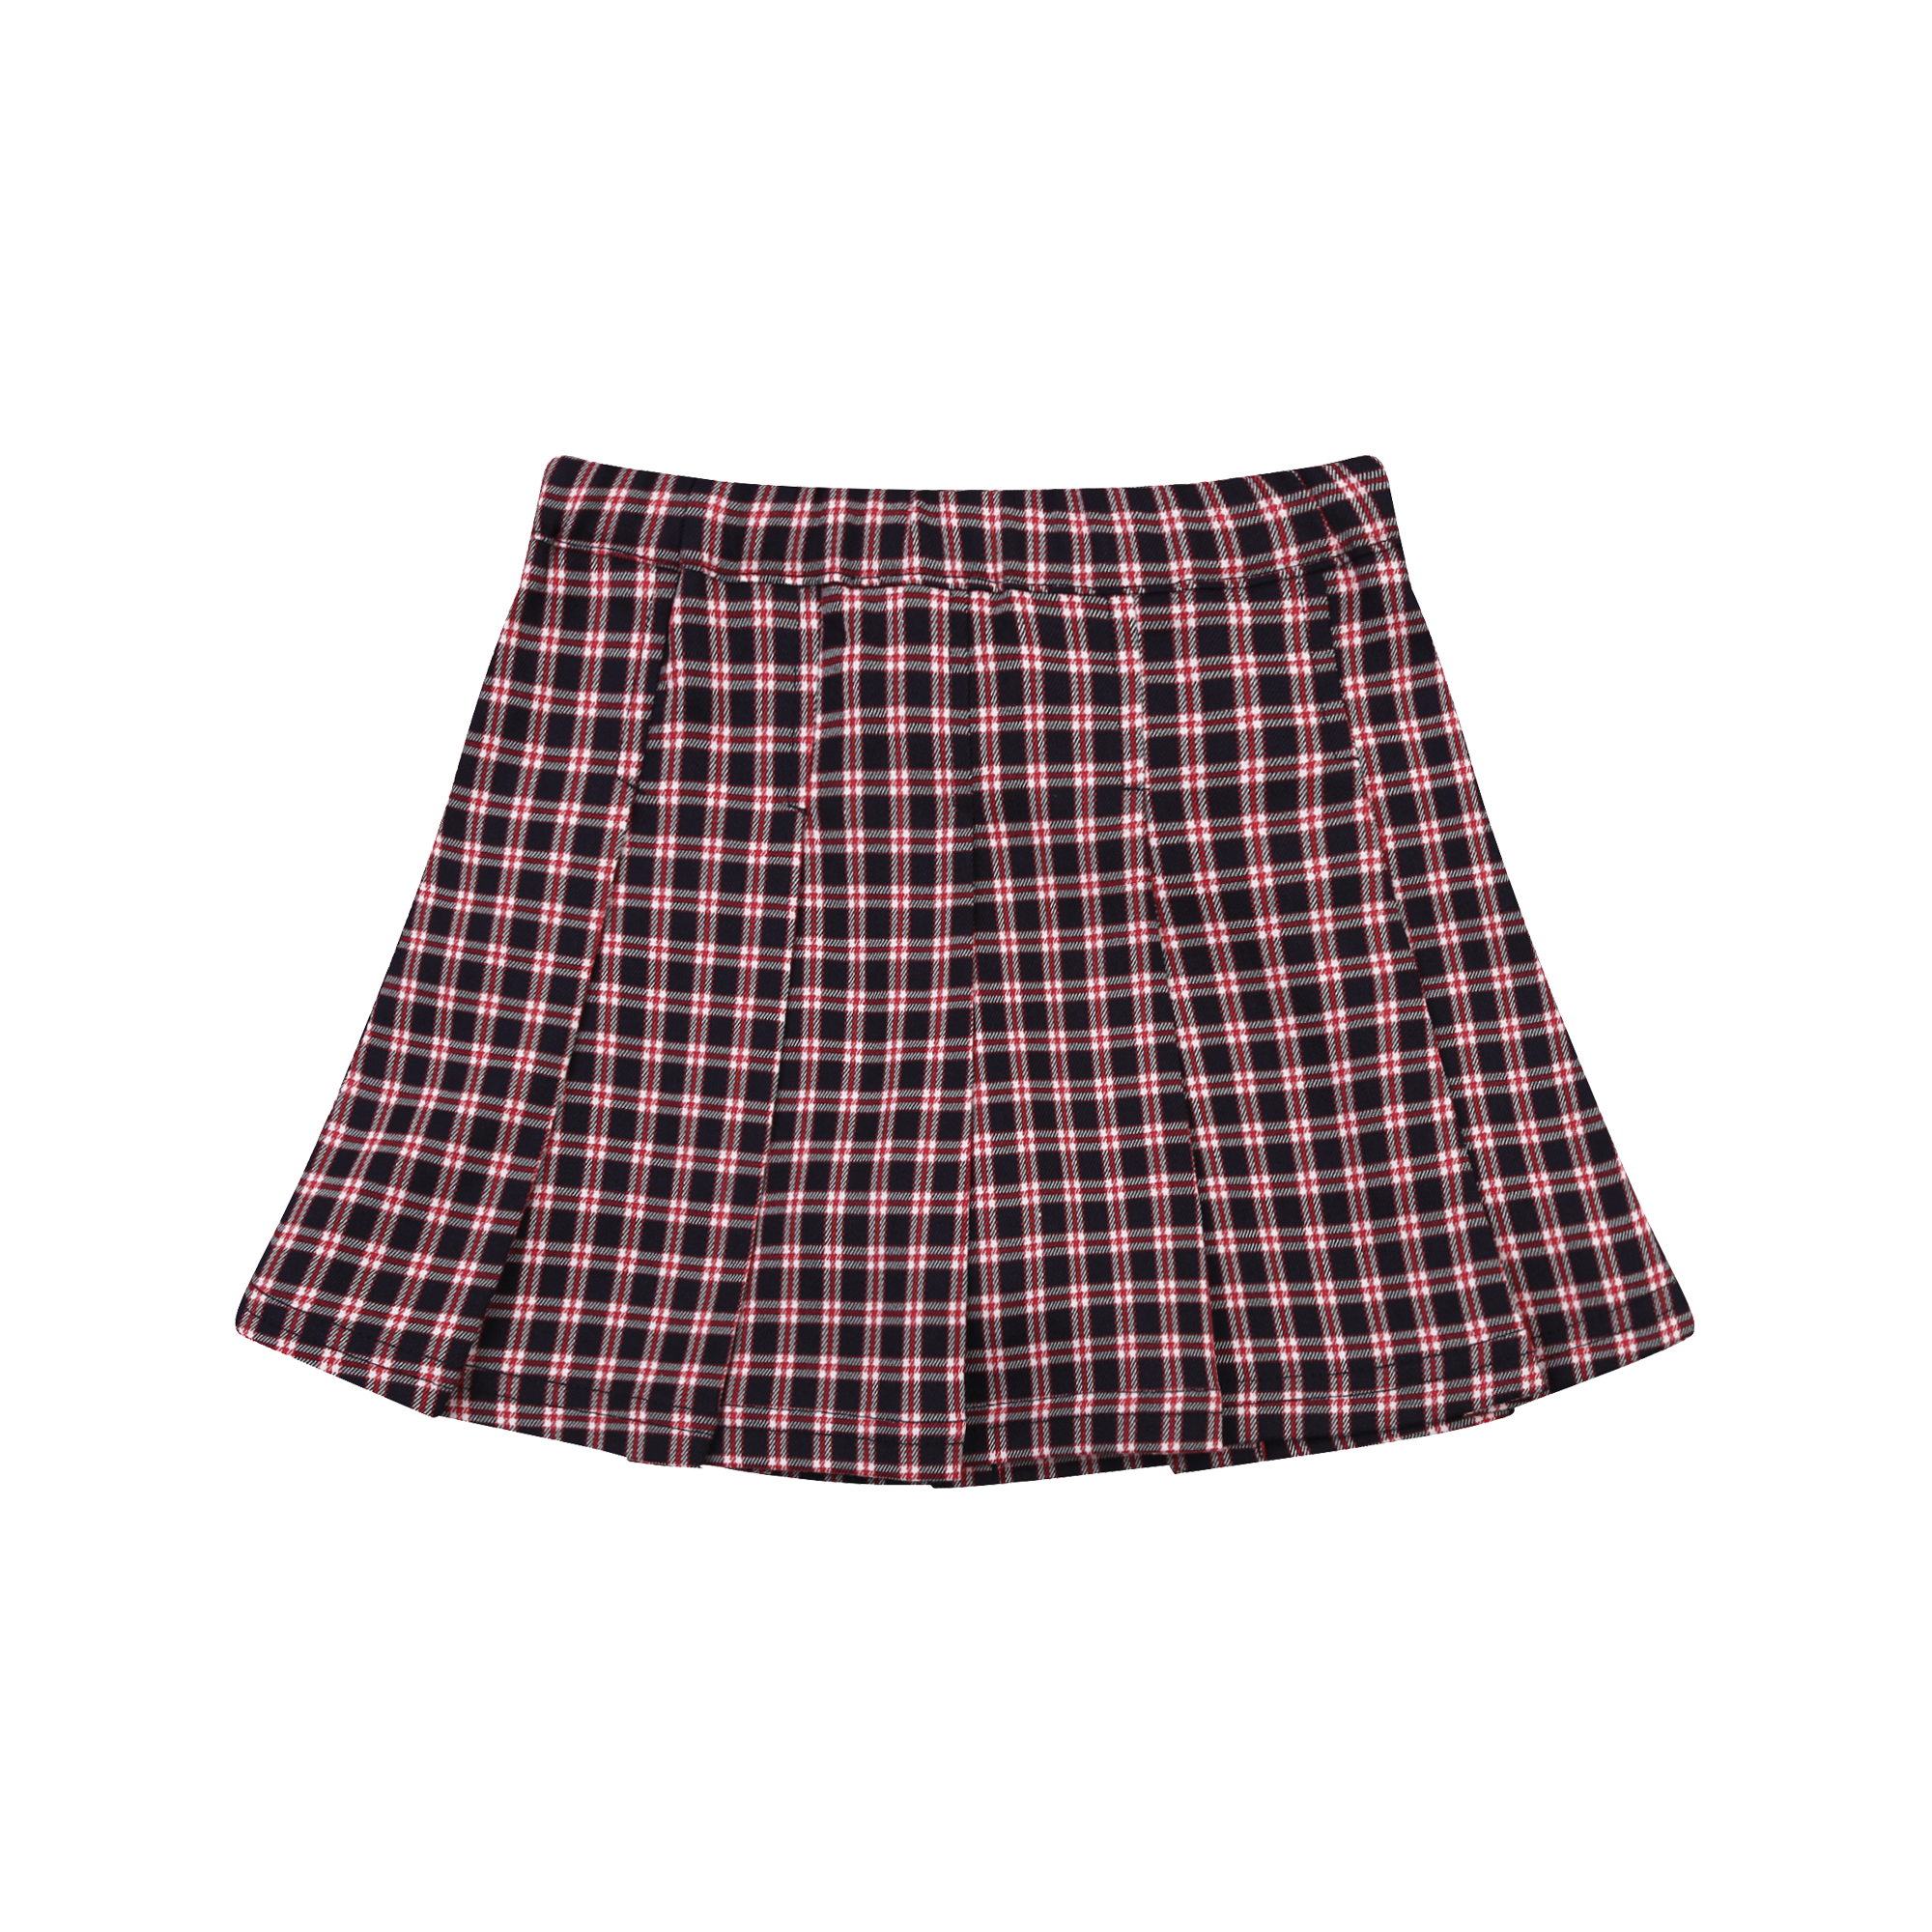 MLB GIRL'S CHECK PLEATS SKIRT